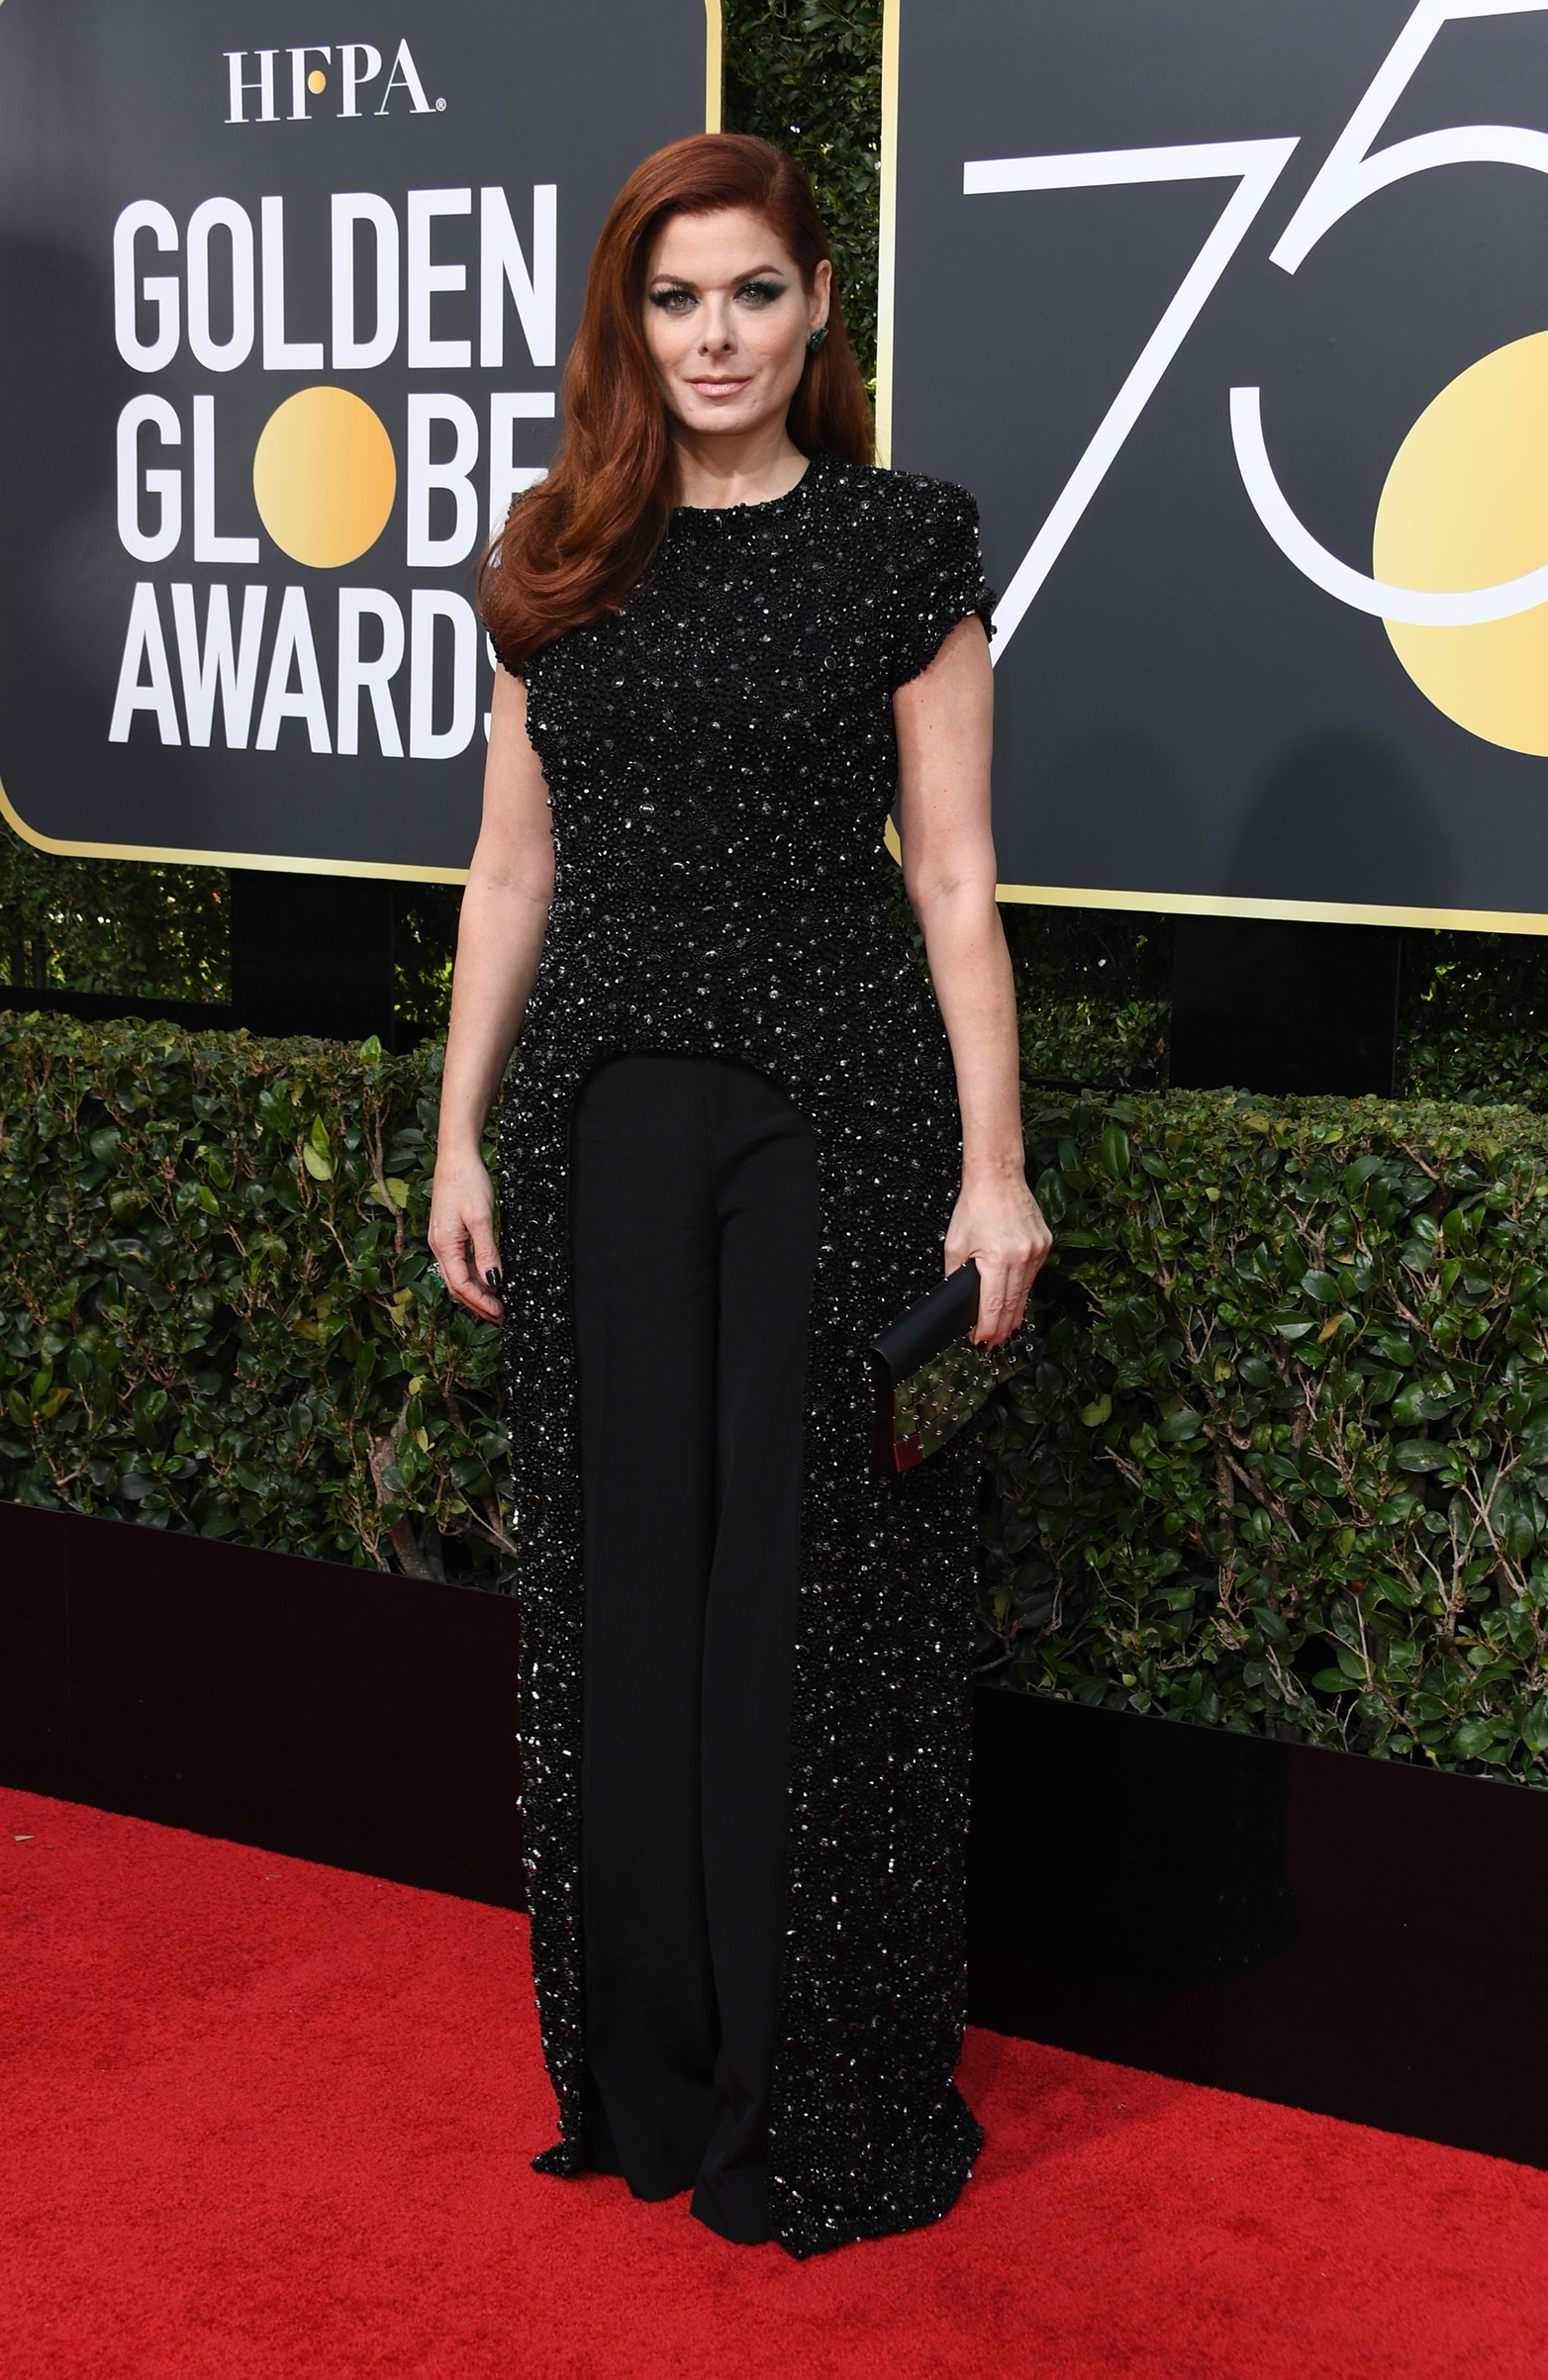 Actress Debra Messing arrives for the 75th Golden Globe Awards on January 7, 2018, in Beverly Hills, California.